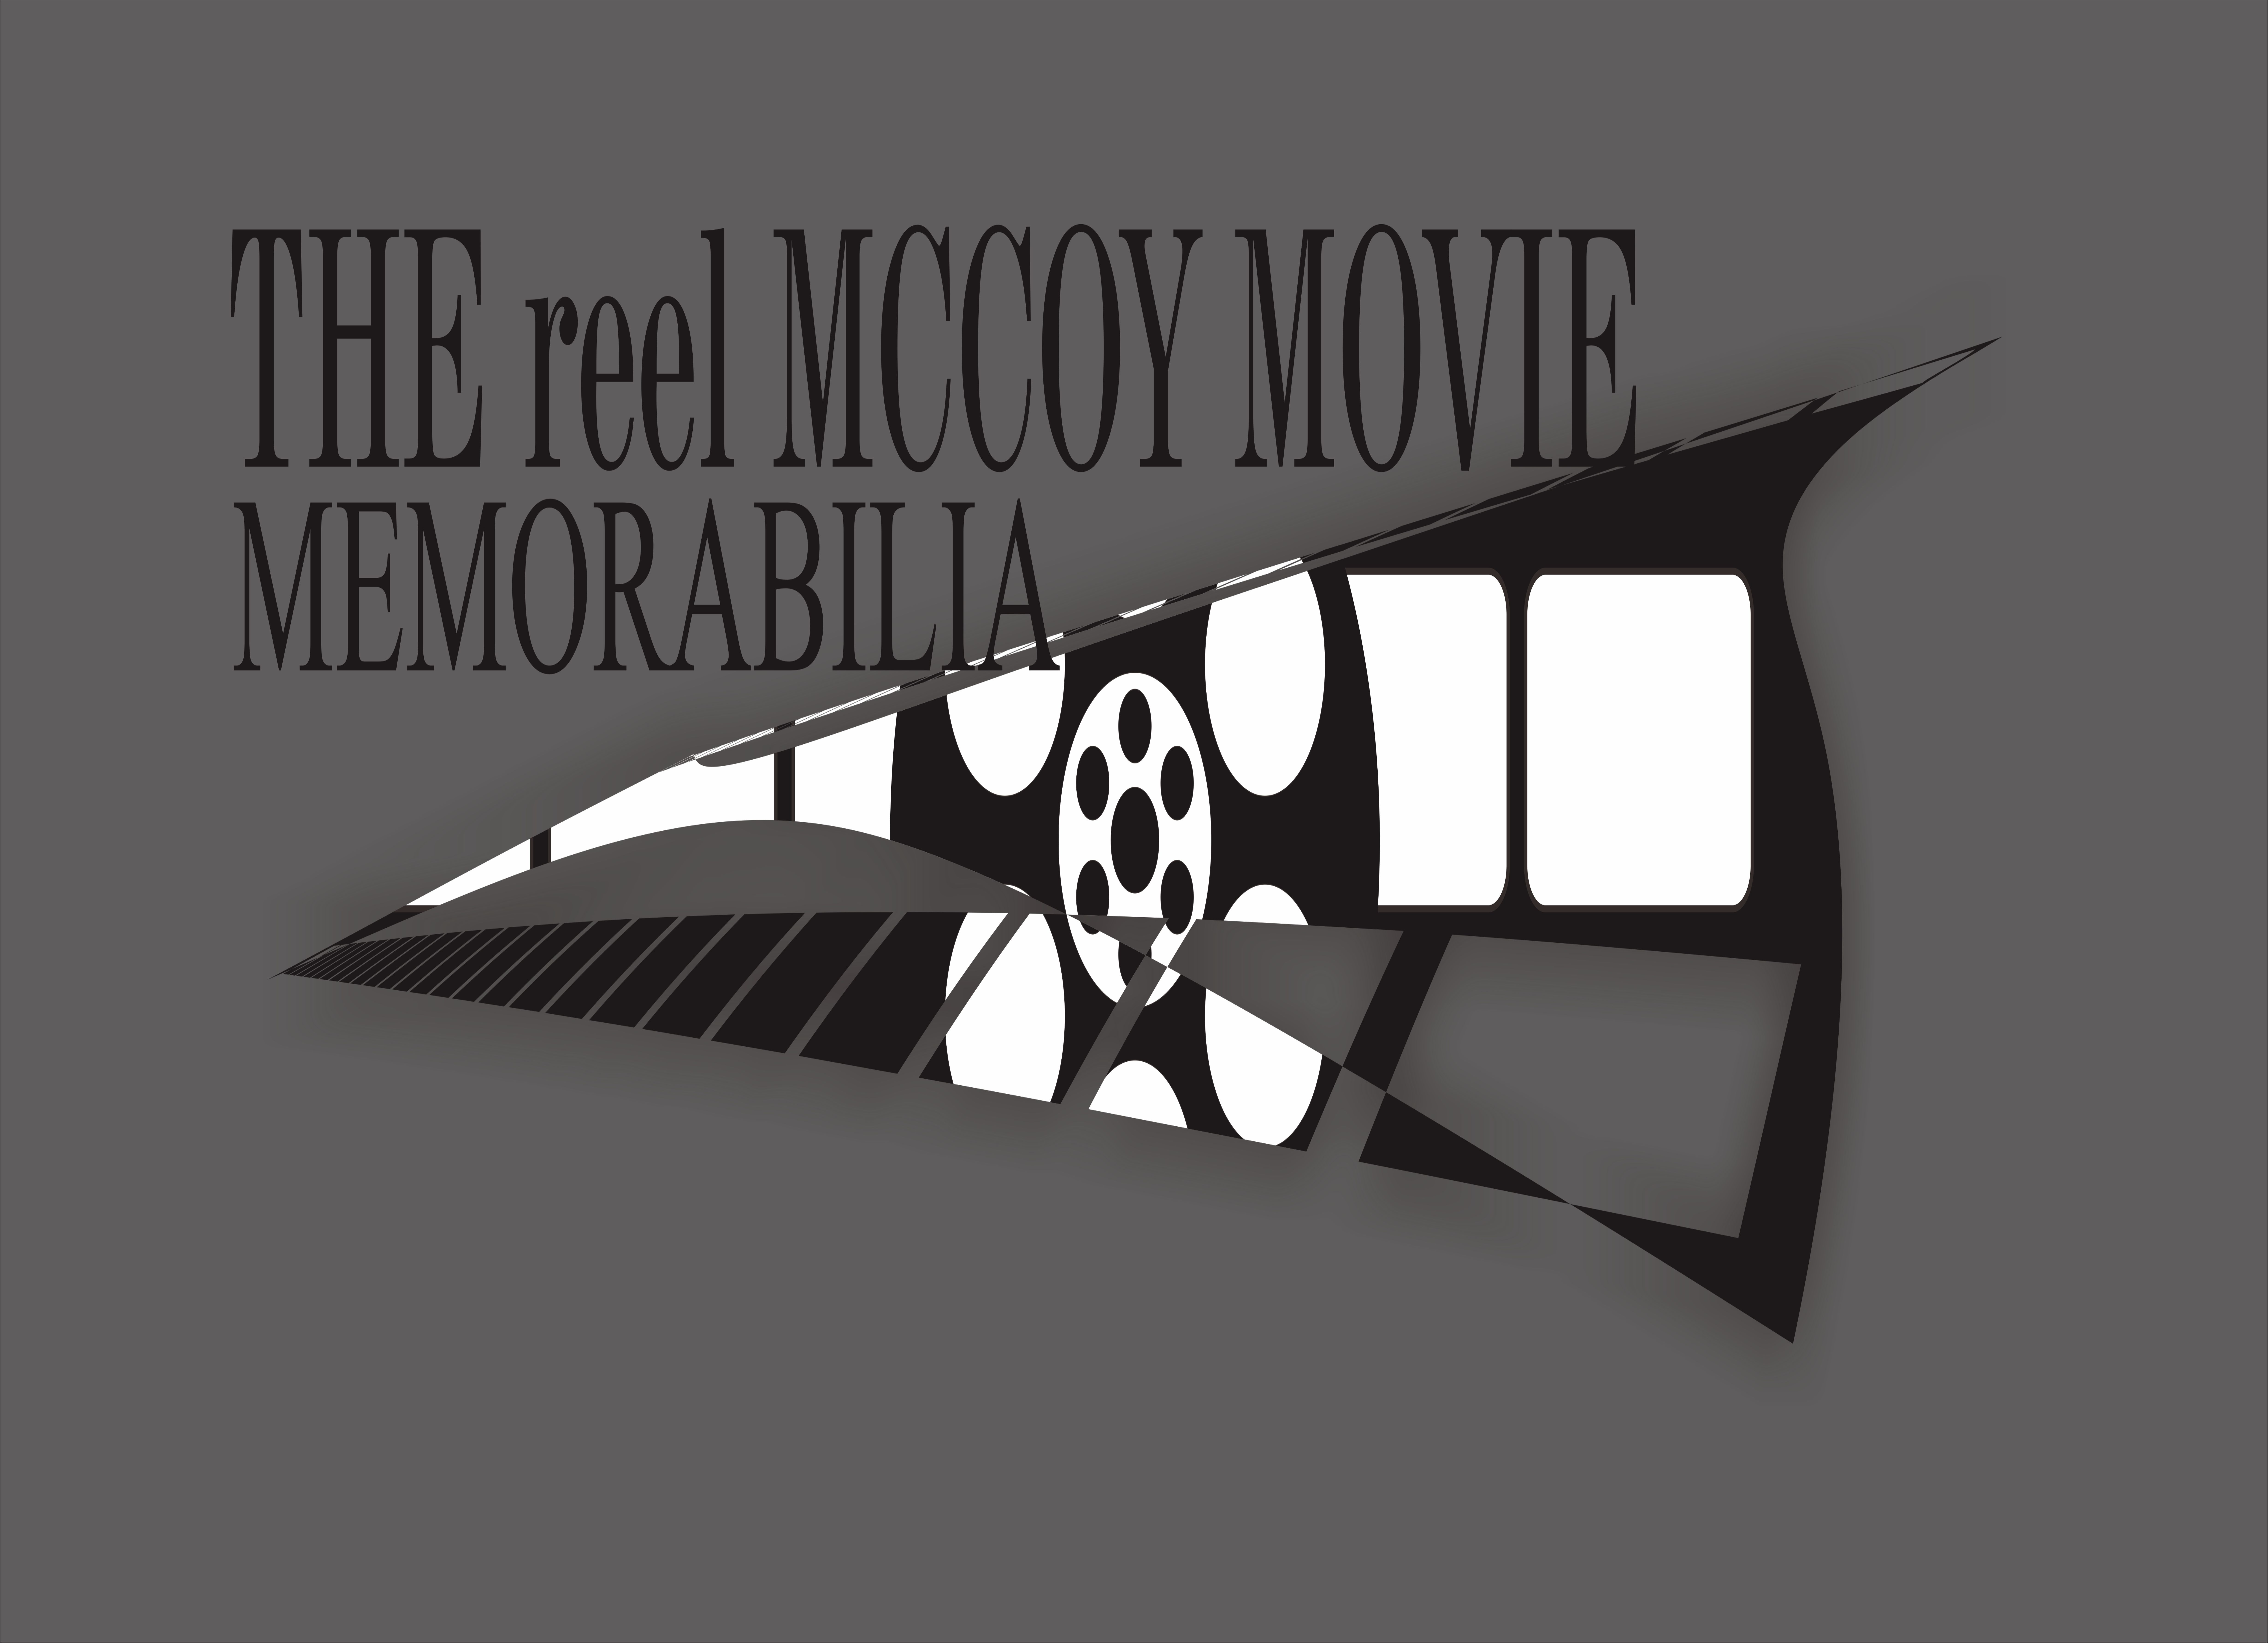 Logo Design by Teguh Hanuraga - Entry No. 16 in the Logo Design Contest Unique Logo Design Wanted for The Reel McCoy Movie Memorabilia.